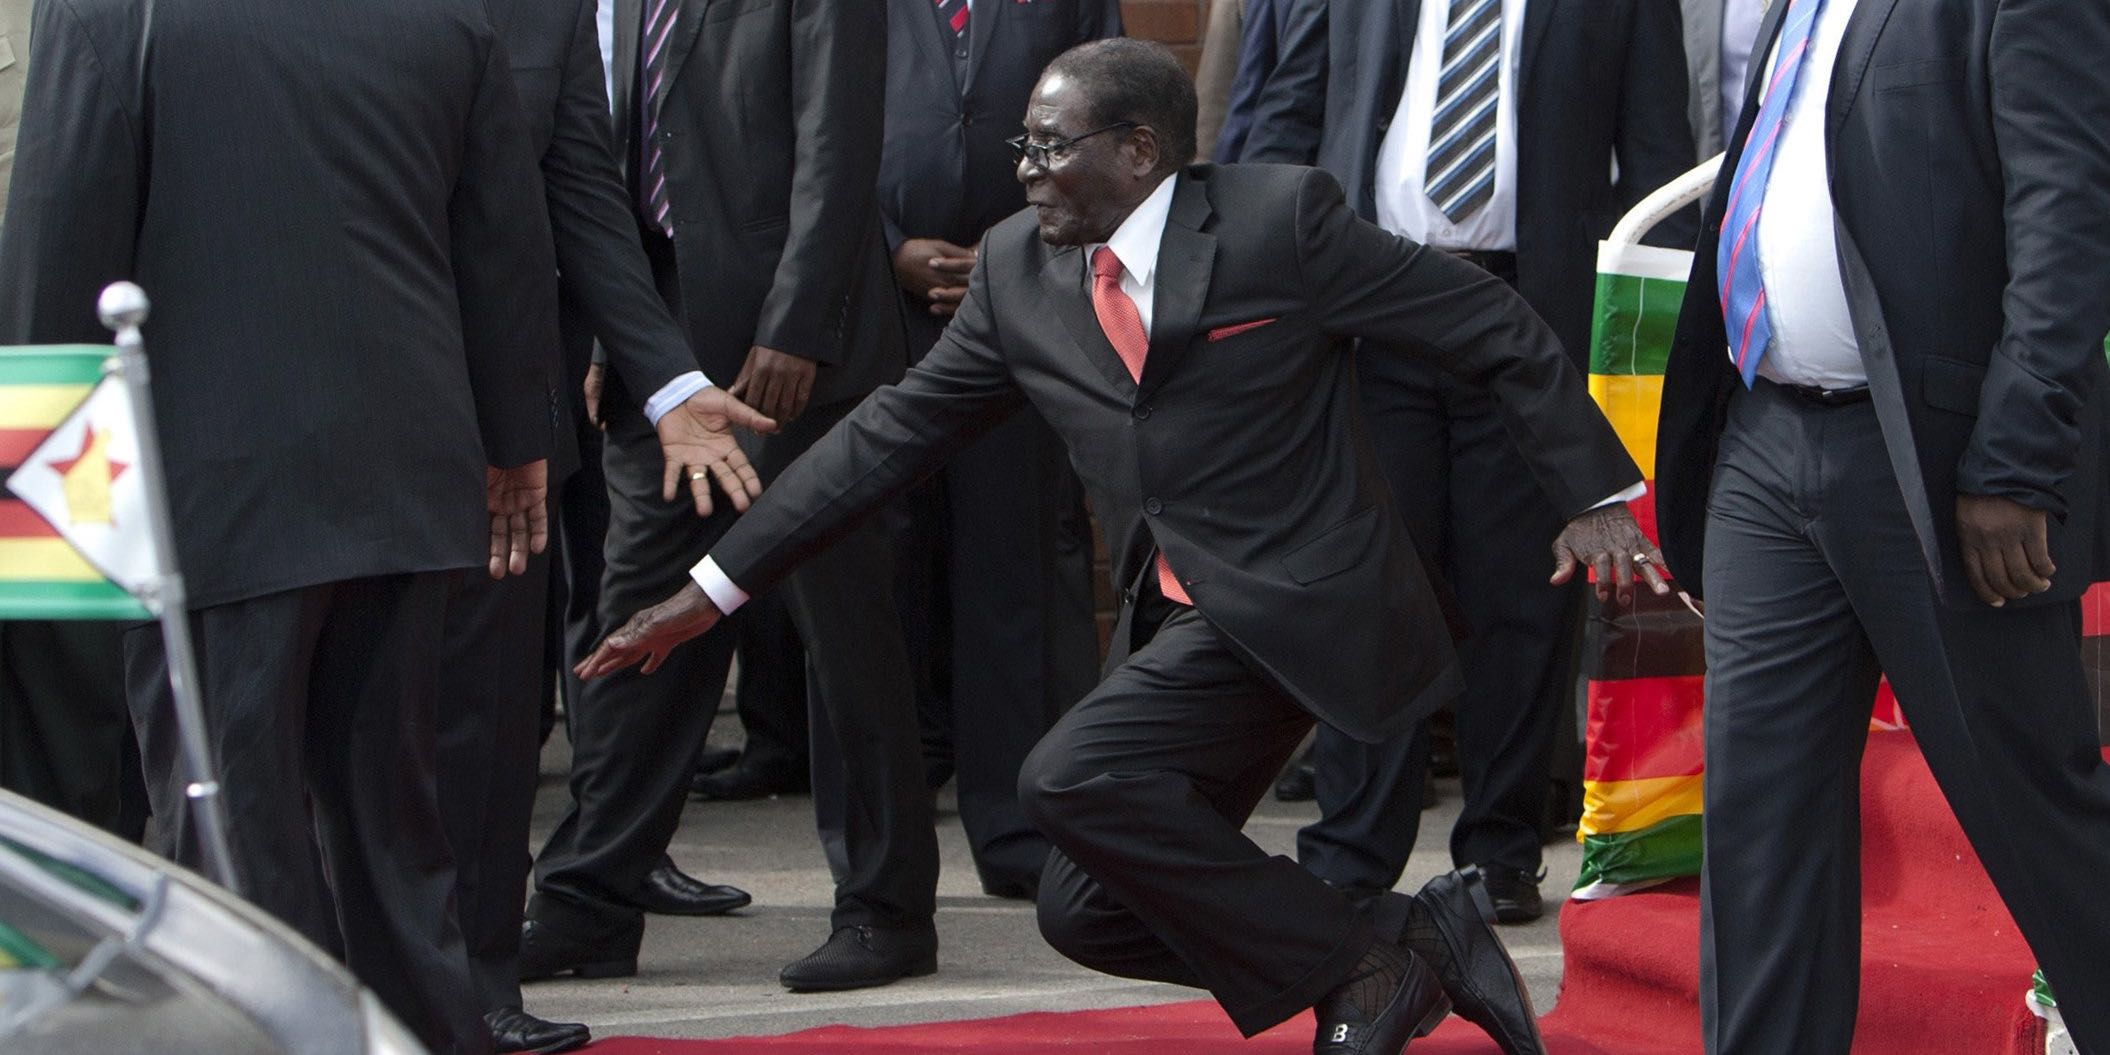 zimbabwe-dictator-mugabe-falls-down-steps-photographers-forced-to-delete-images